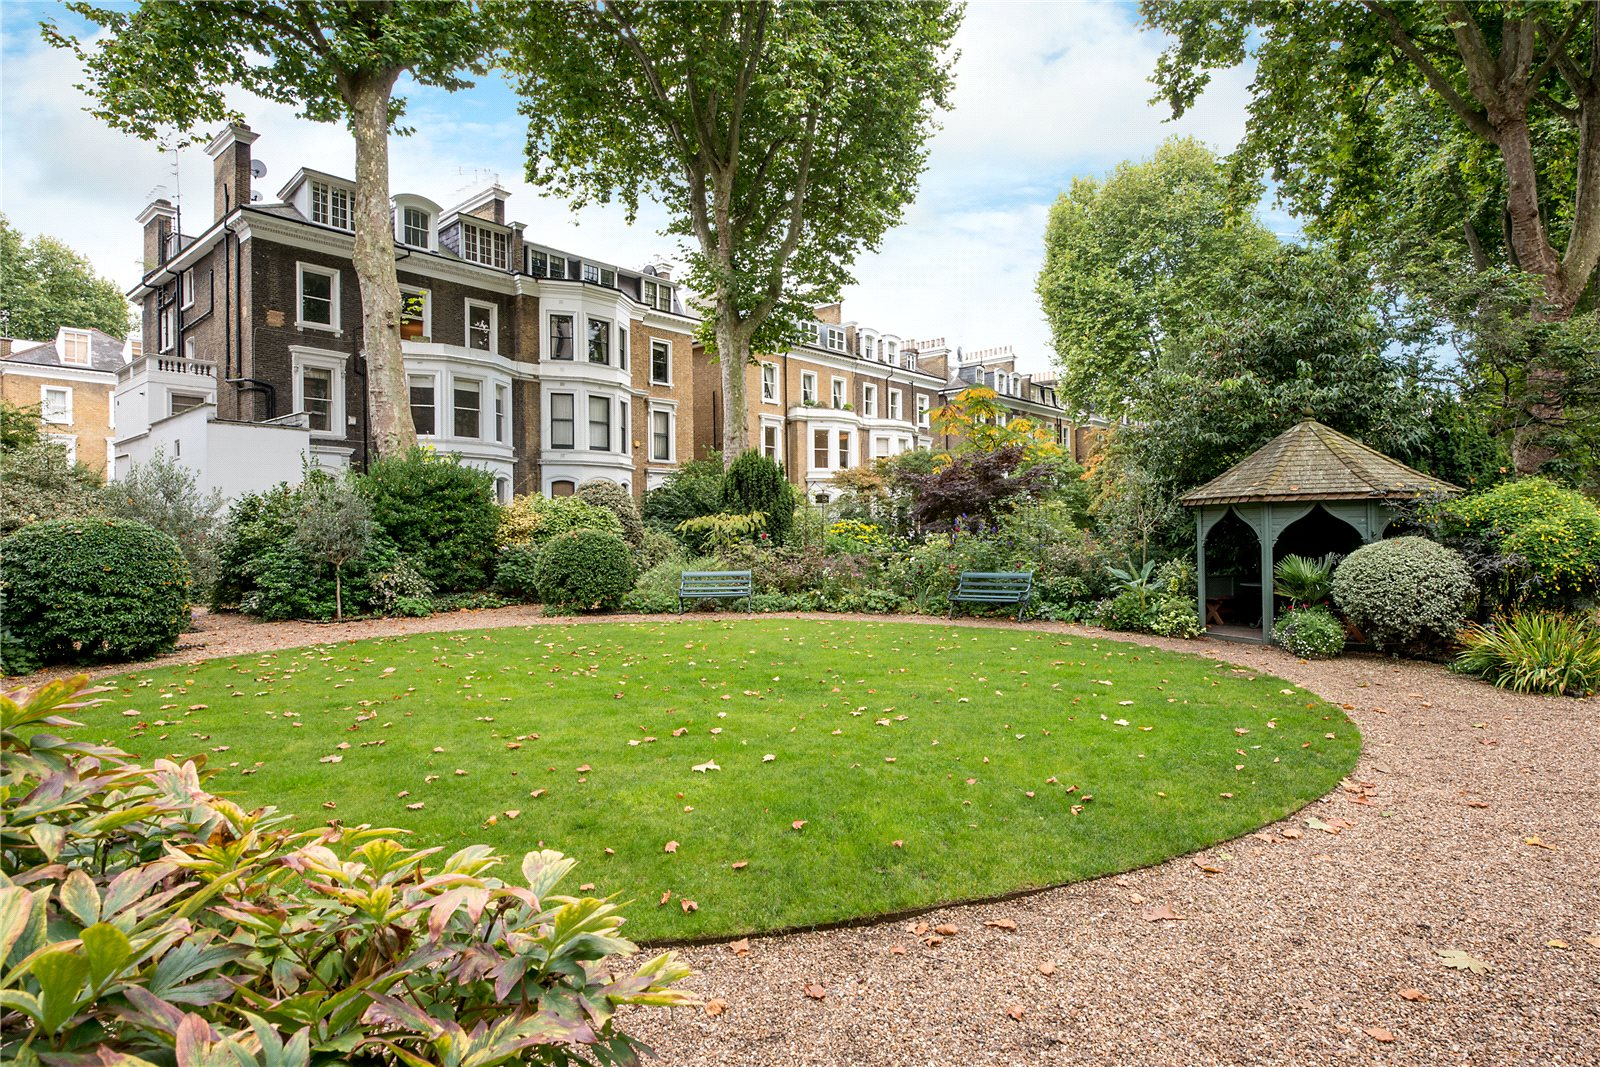 Additional photo for property listing at Wetherby Gardens, South Kensington, London, SW5 South Kensington, London, Ingiltere